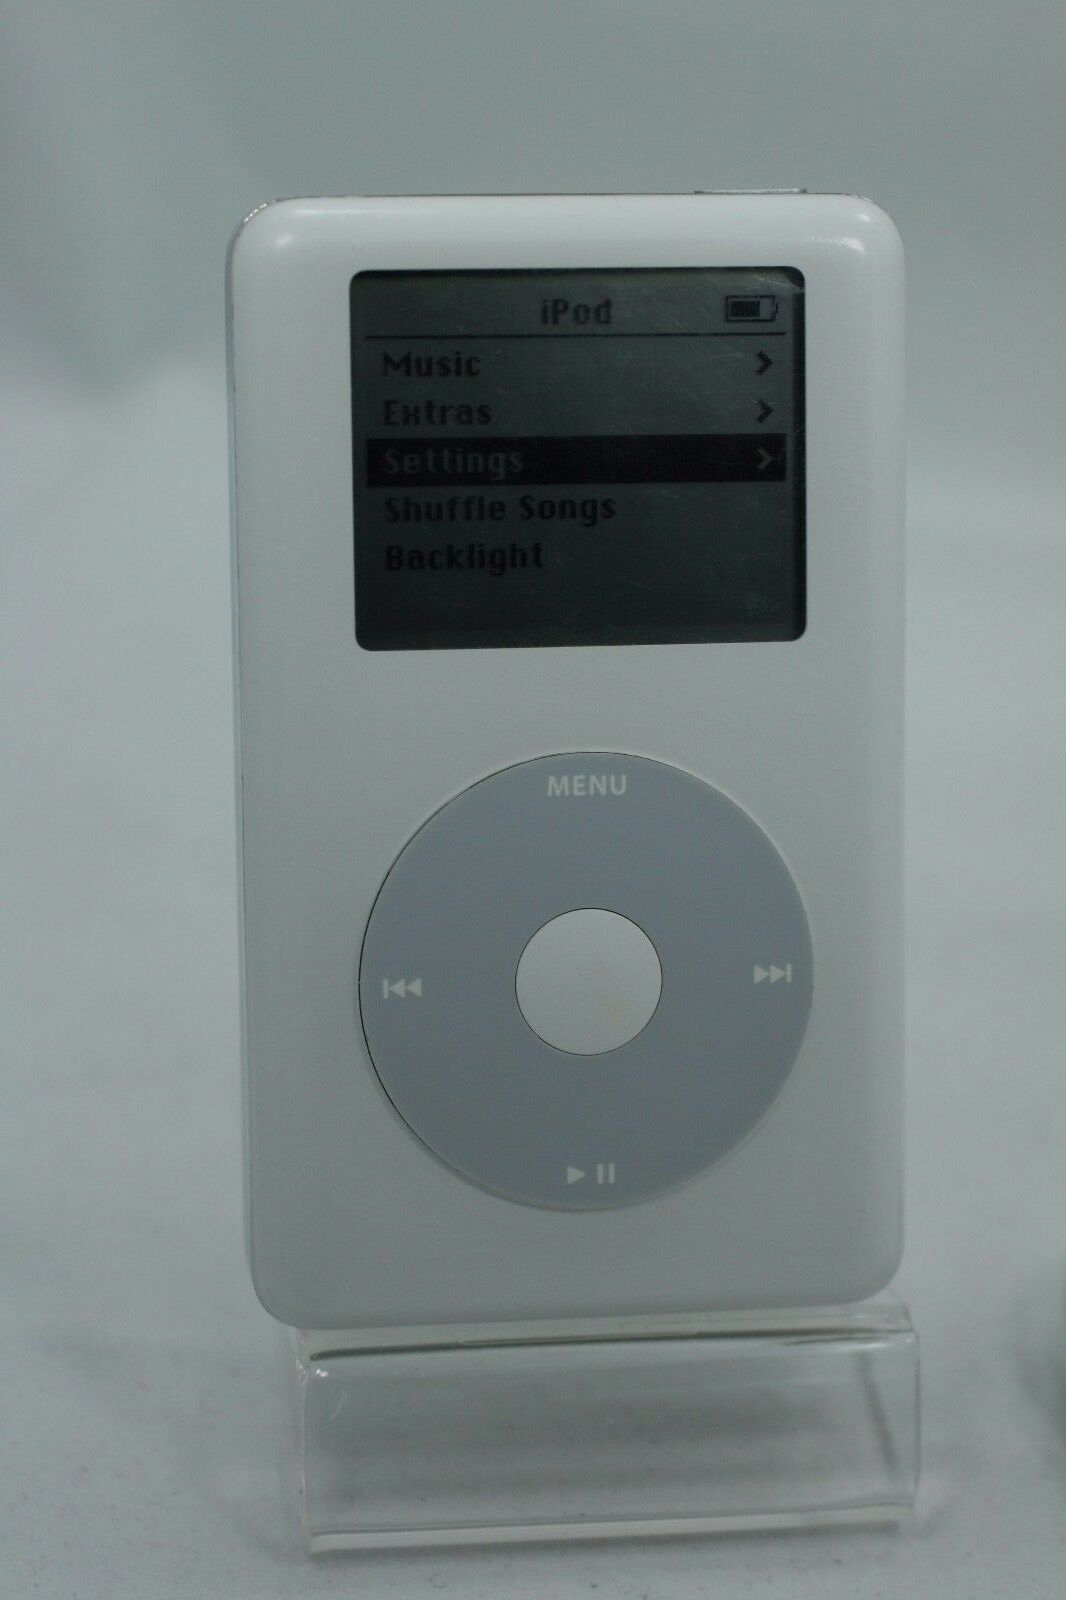 Pdf user guide ipod classic